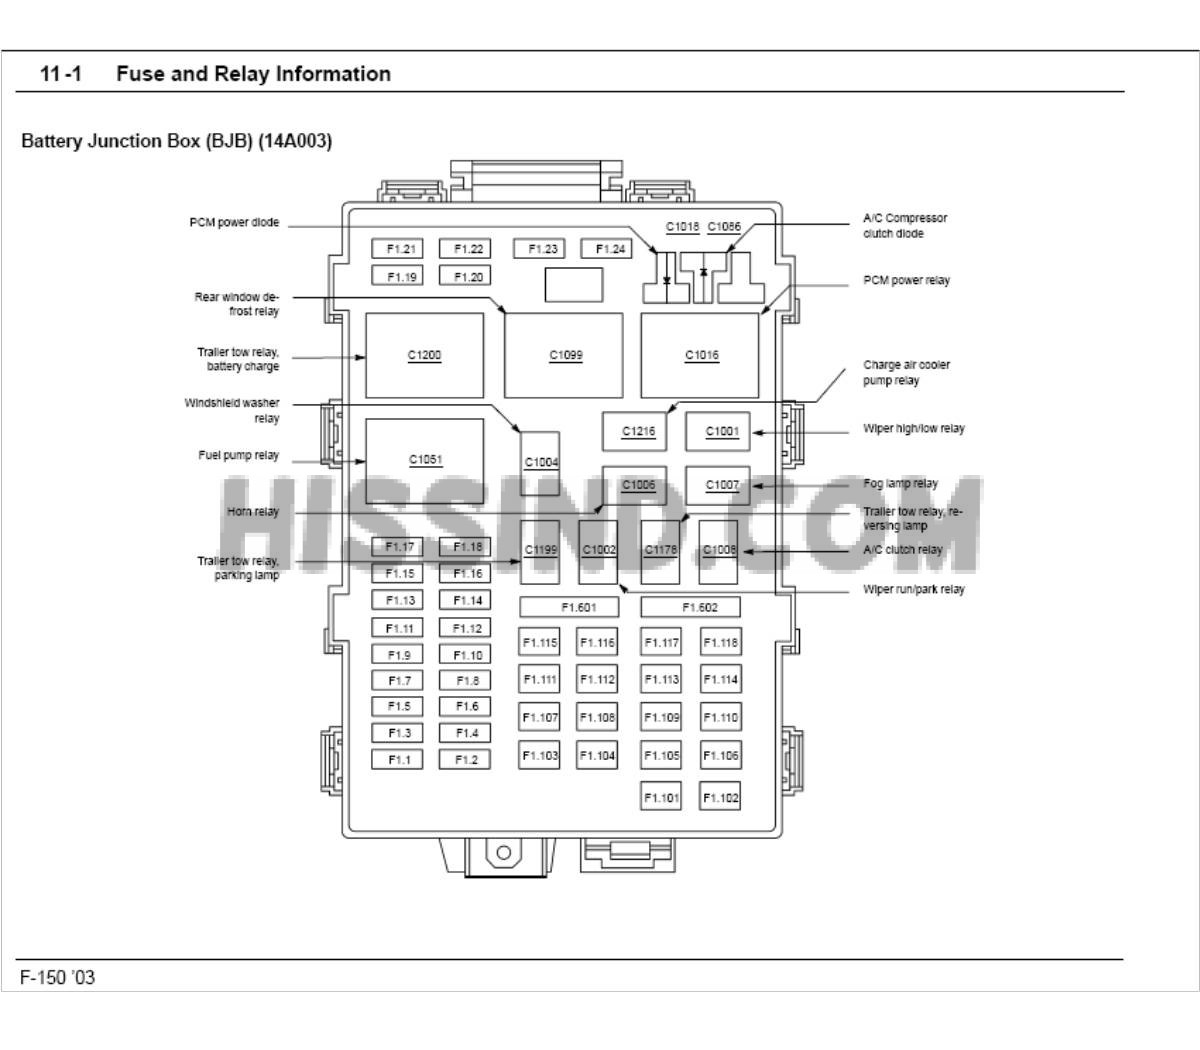 2000 ford f150 fuse box diagram engine bay 97 f150 under hood fuse box diagram #15